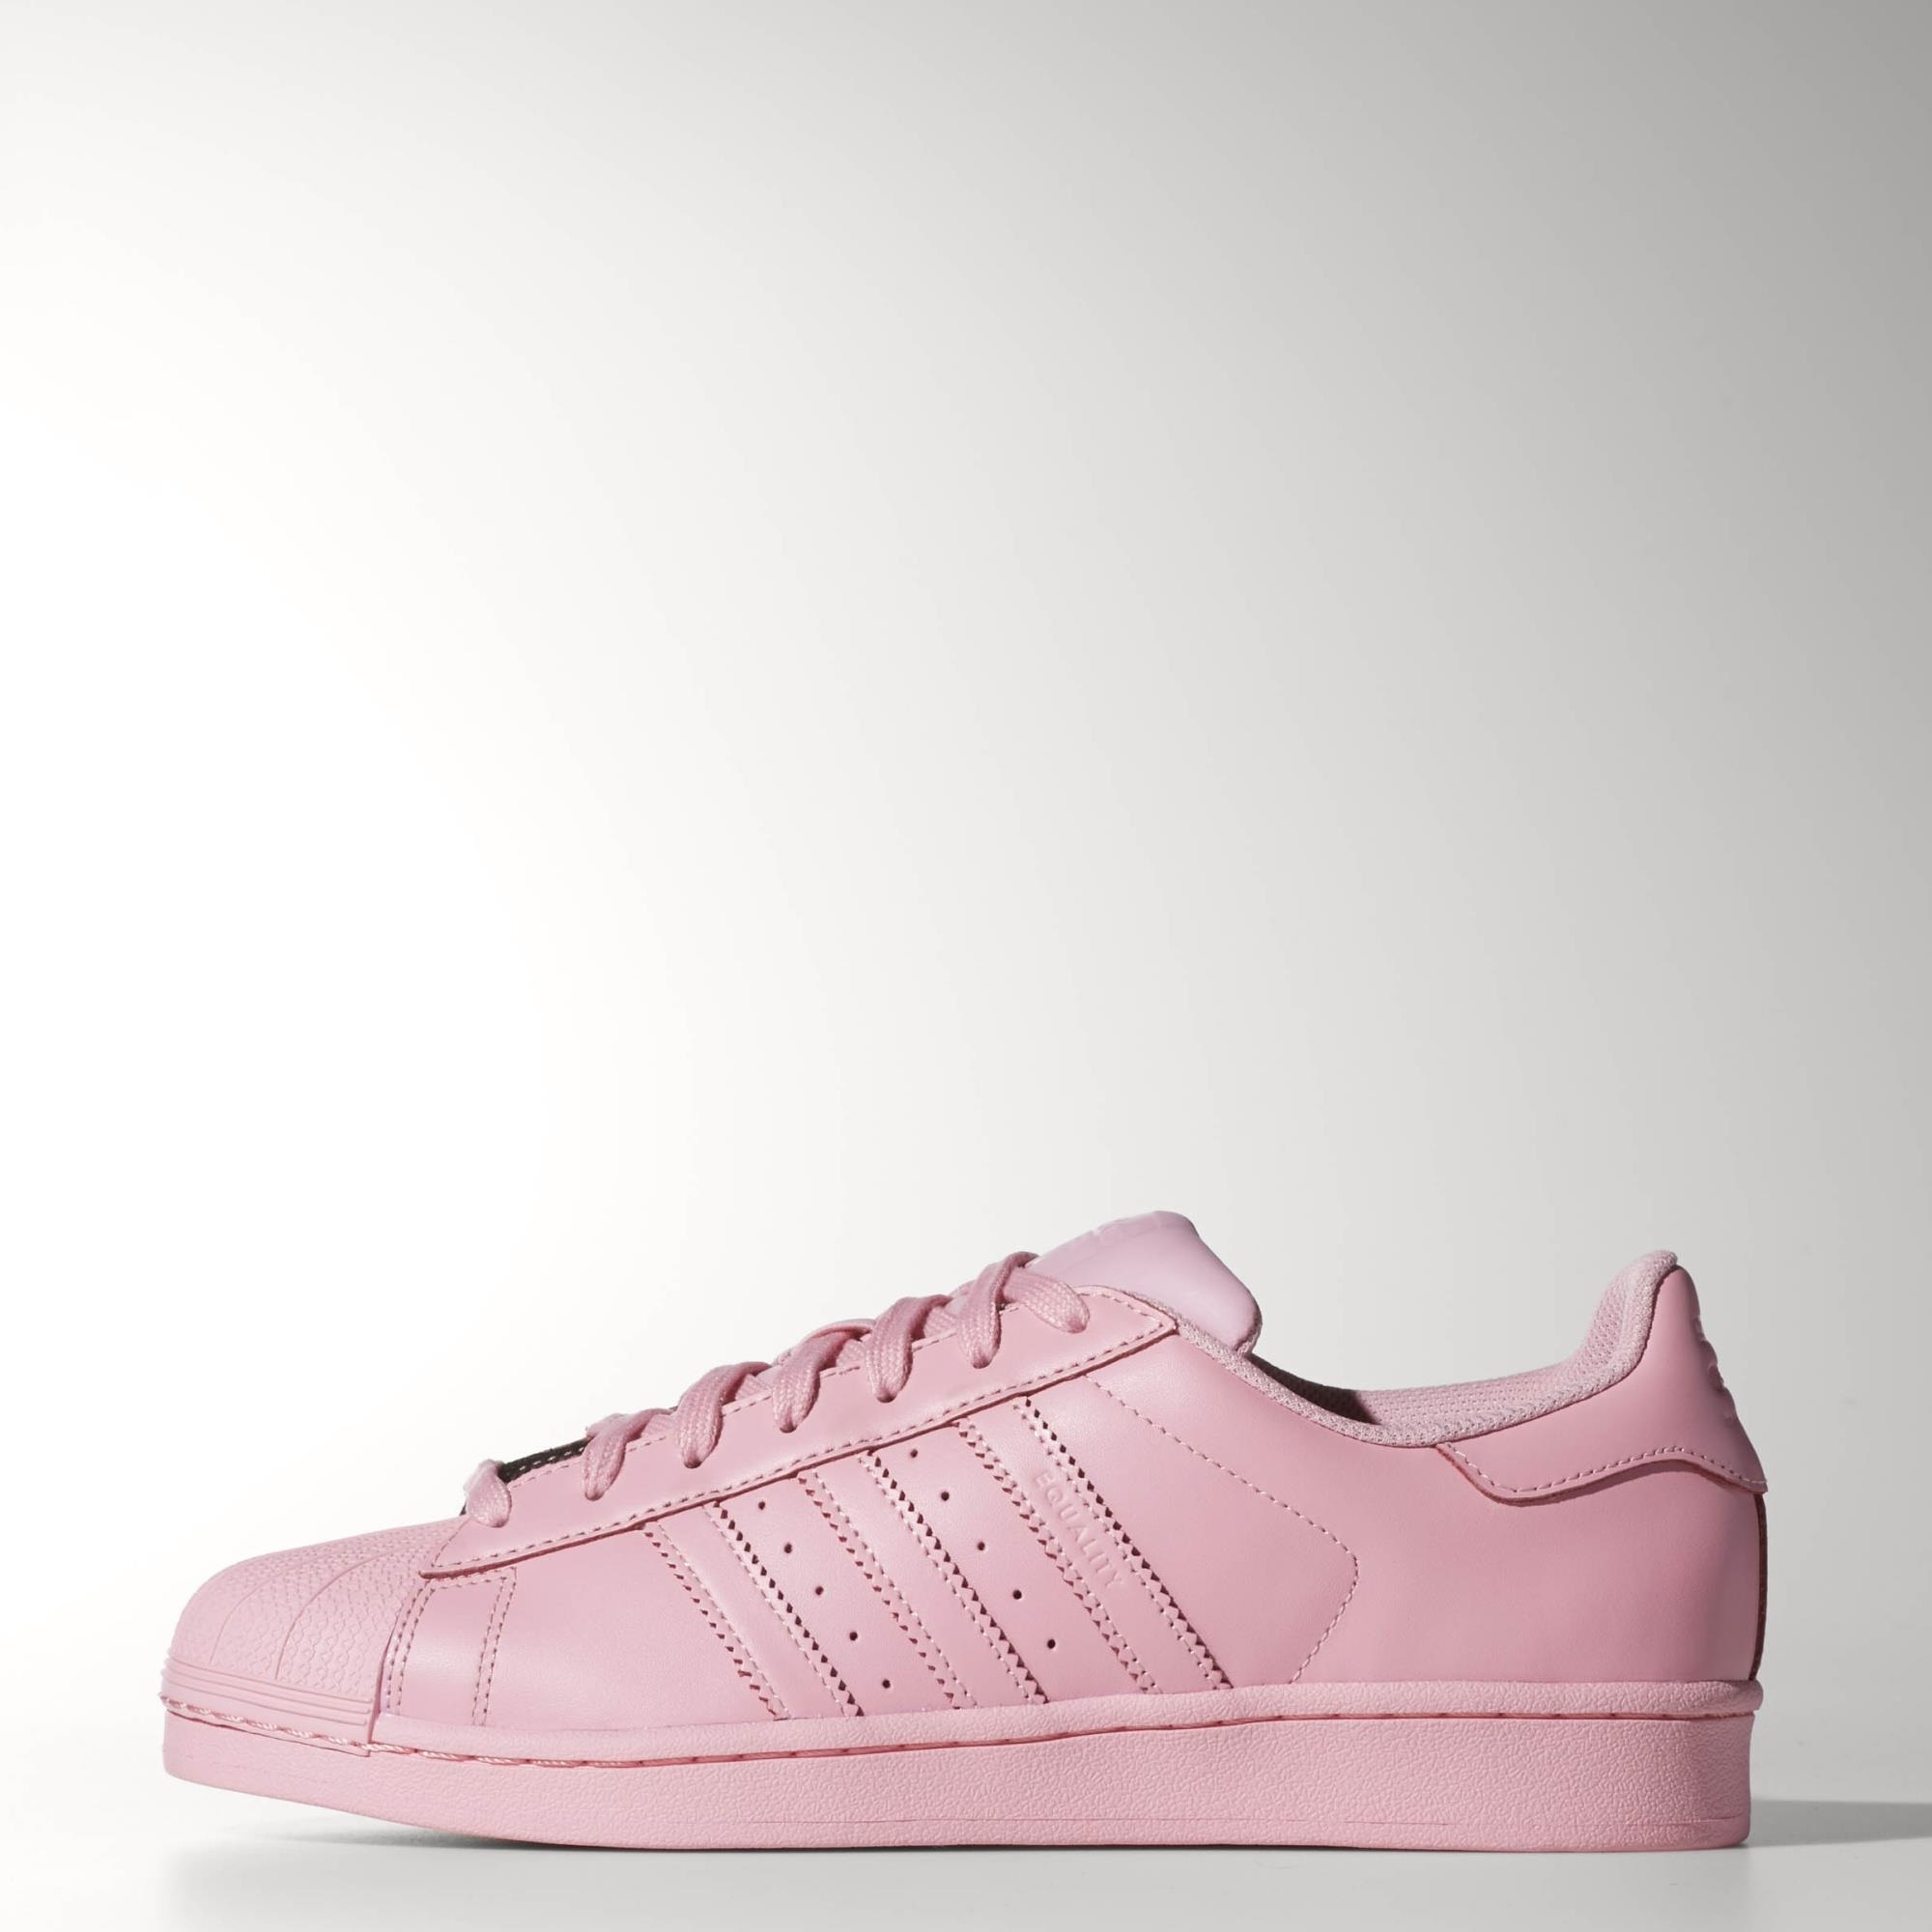 Superstar Supercolor PinkUs Superstar PinkUs Supercolor Shoes Shoes Adidas Superstar Adidas Adidas N8OP0vmynw